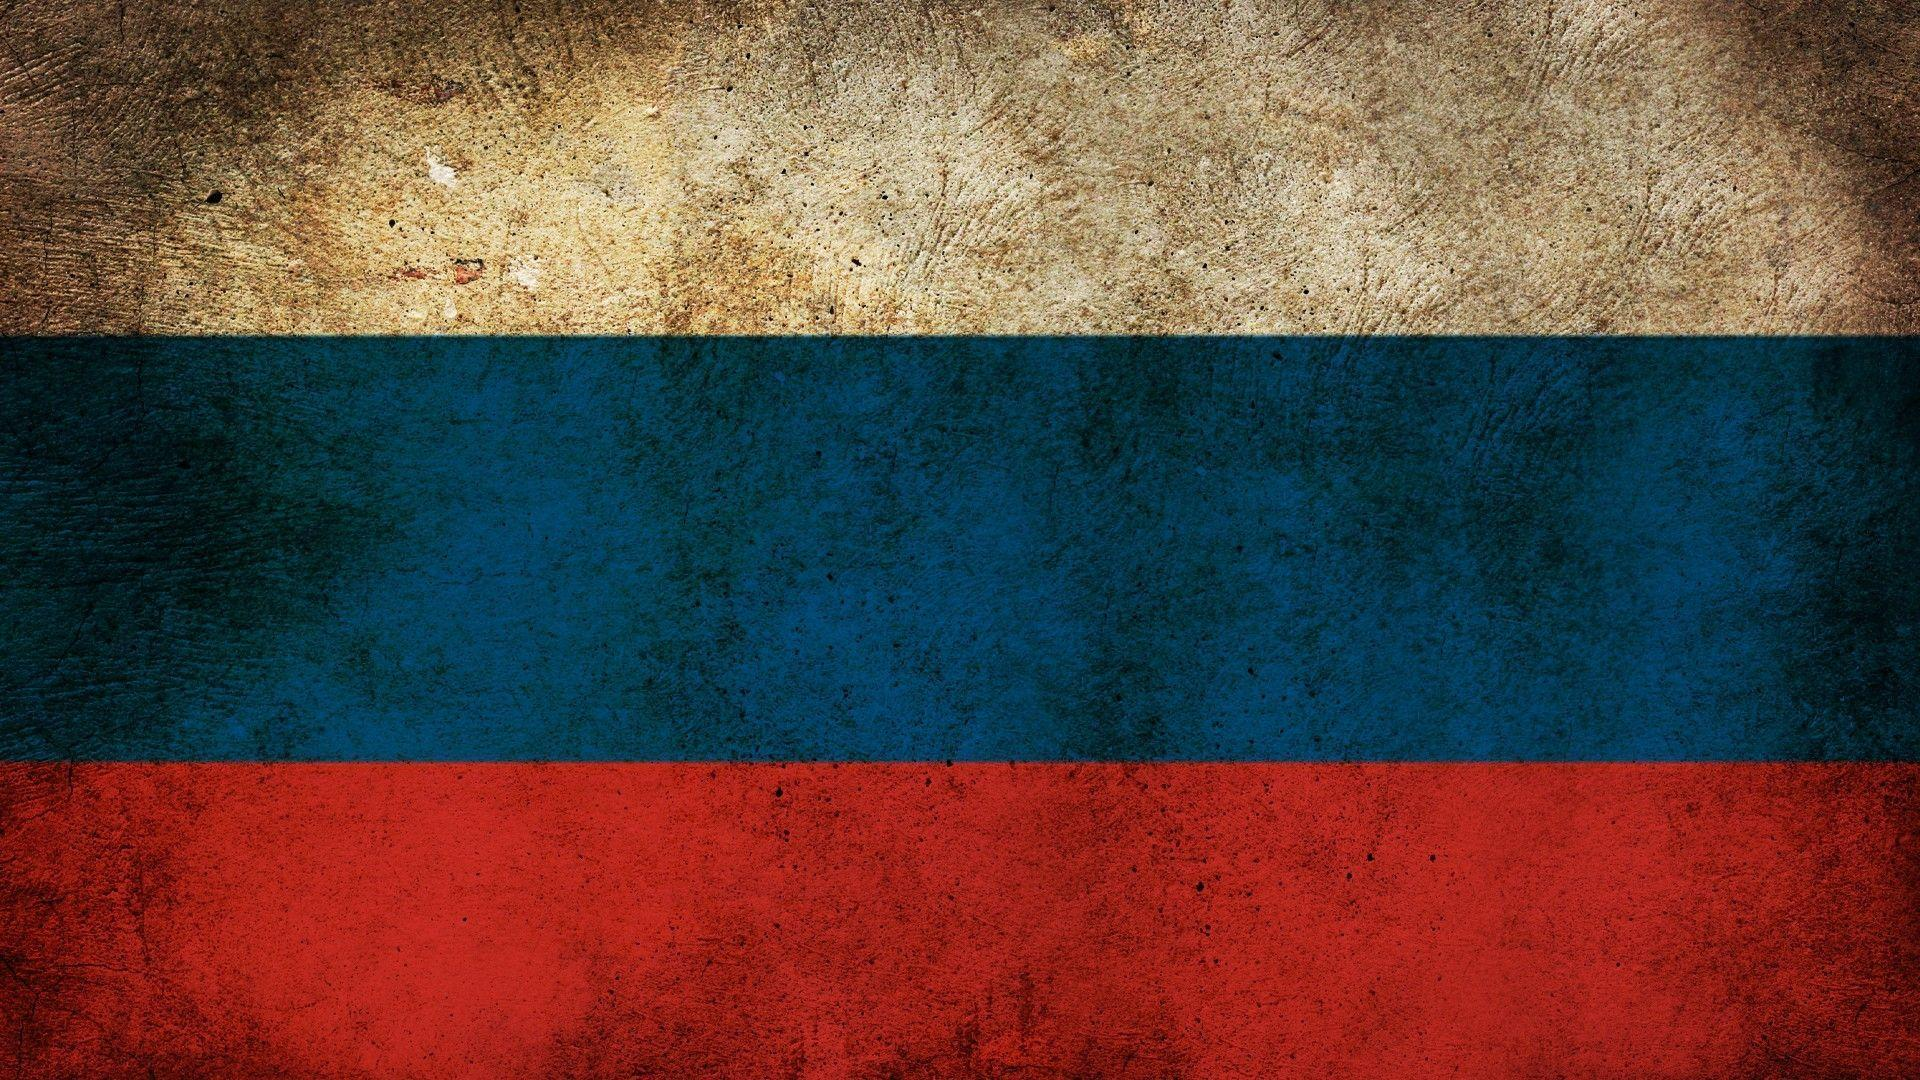 Download Wallpaper 1920x1080 Flag, Coat of arms, Russia, Empire ...